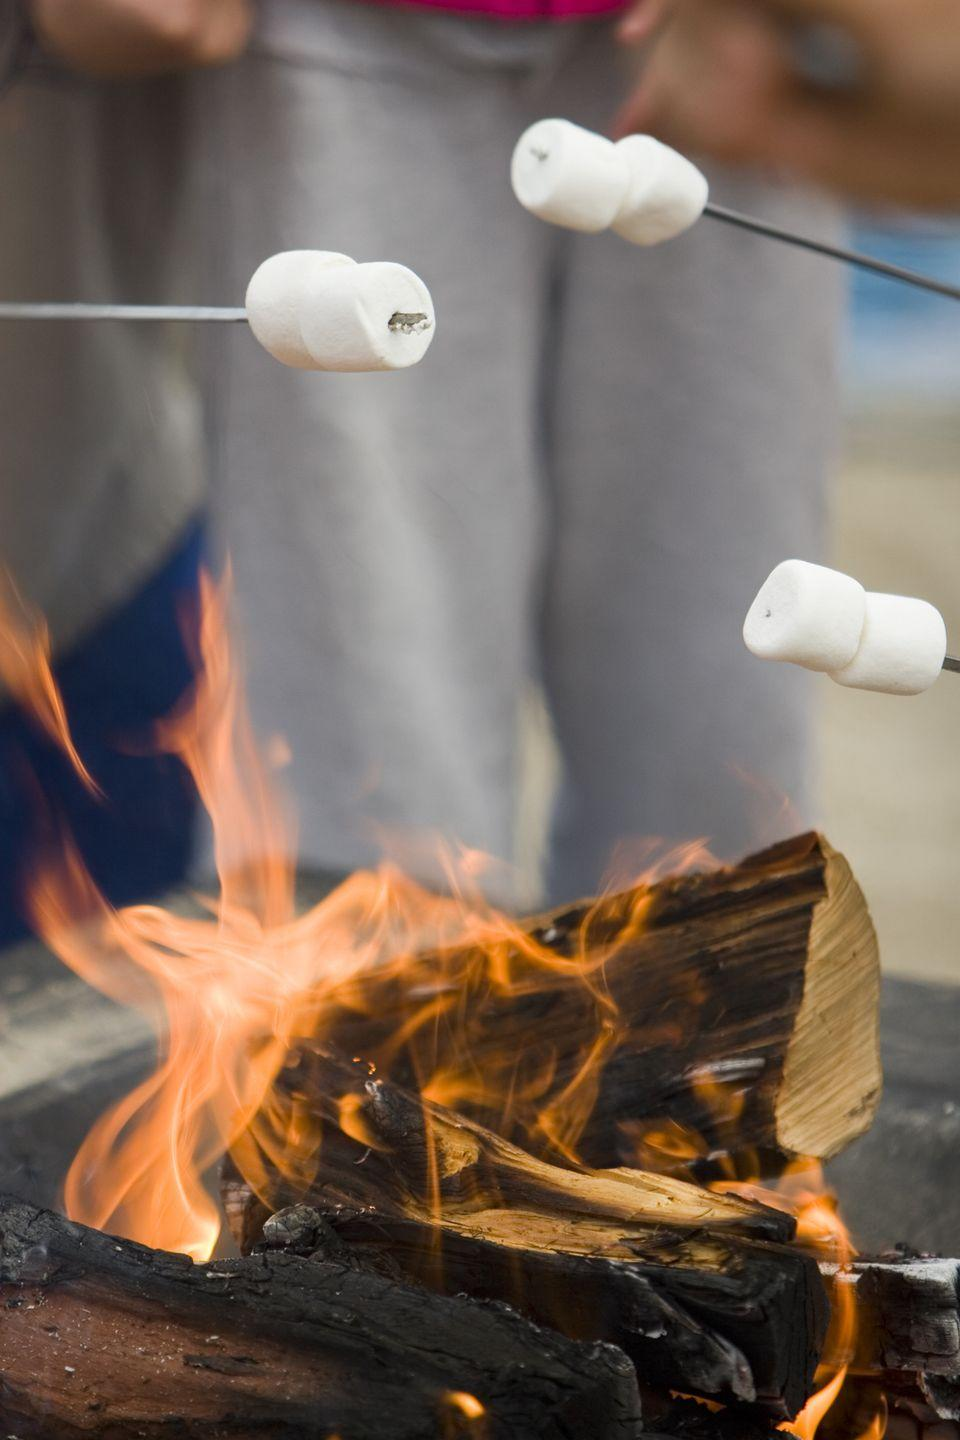 """<p>Why are scary stories so much more frightening when told around a campfire? This Halloween, cook up some s'mores and ask everyone to come prepared to share their favorite spooky tale.</p><p><a class=""""link rapid-noclick-resp"""" href=""""https://www.amazon.com/Fire-Pits-Outdoor-Wood-Burning/dp/B0137QZ1Q6/ref=sr_1_2_sspa?tag=syn-yahoo-20&ascsubtag=%5Bartid%7C10072.g.28787574%5Bsrc%7Cyahoo-us"""" rel=""""nofollow noopener"""" target=""""_blank"""" data-ylk=""""slk:SHOP FIRE PITS"""">SHOP FIRE PITS</a></p>"""